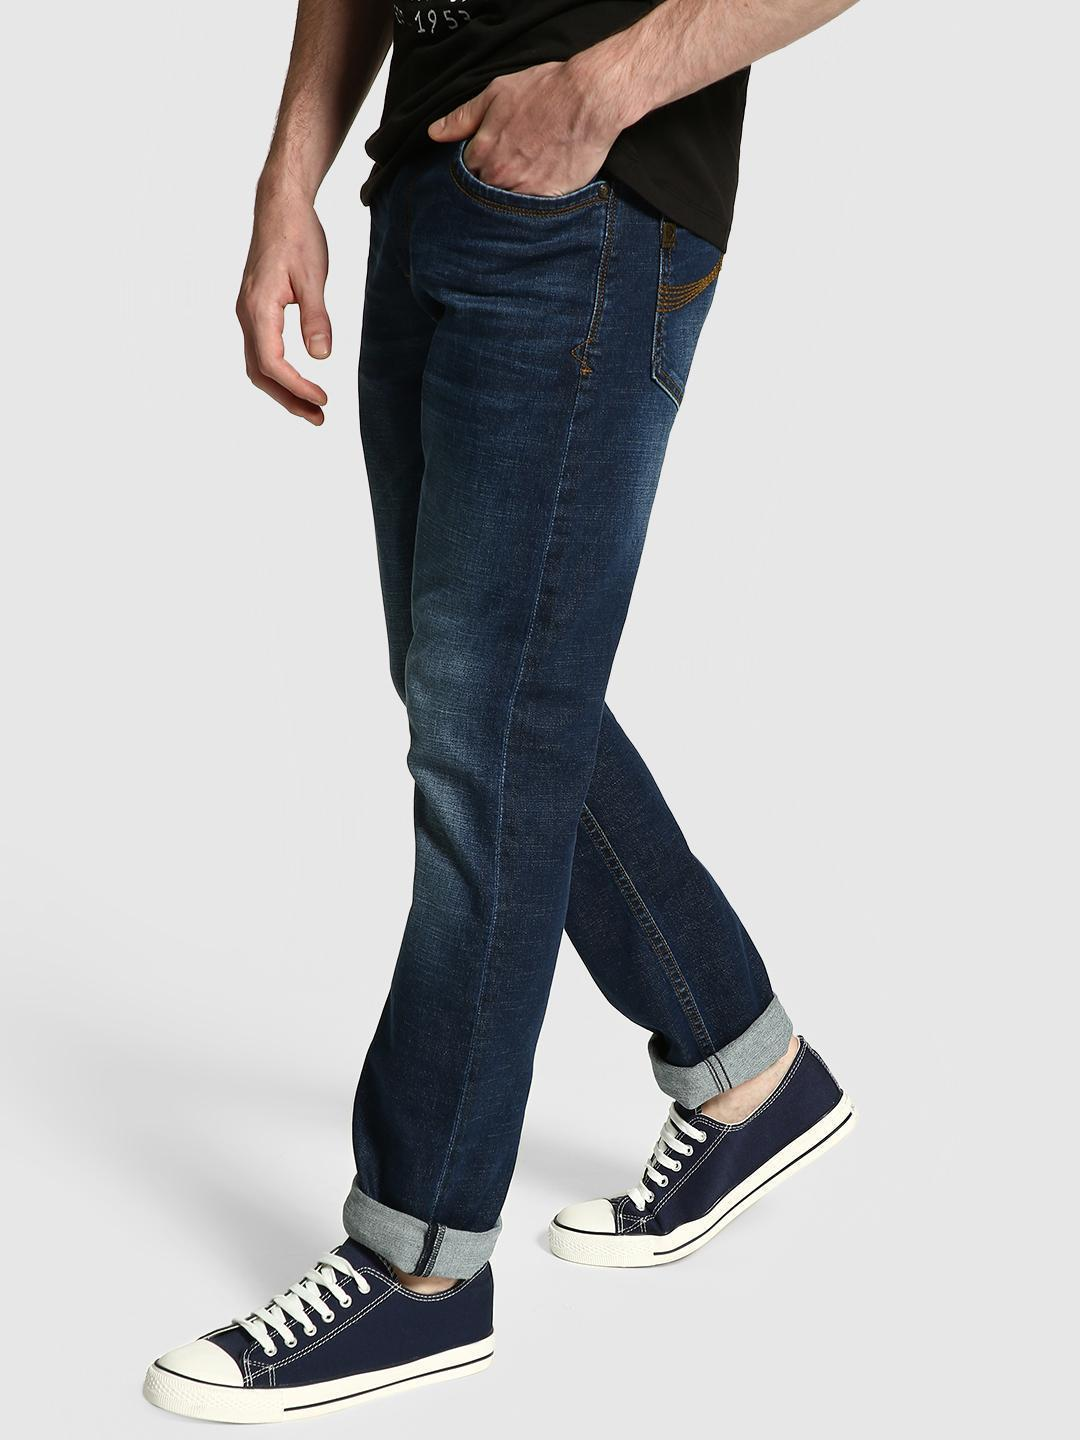 UMM Dark Indigo Light Wash Slim Jeans 1